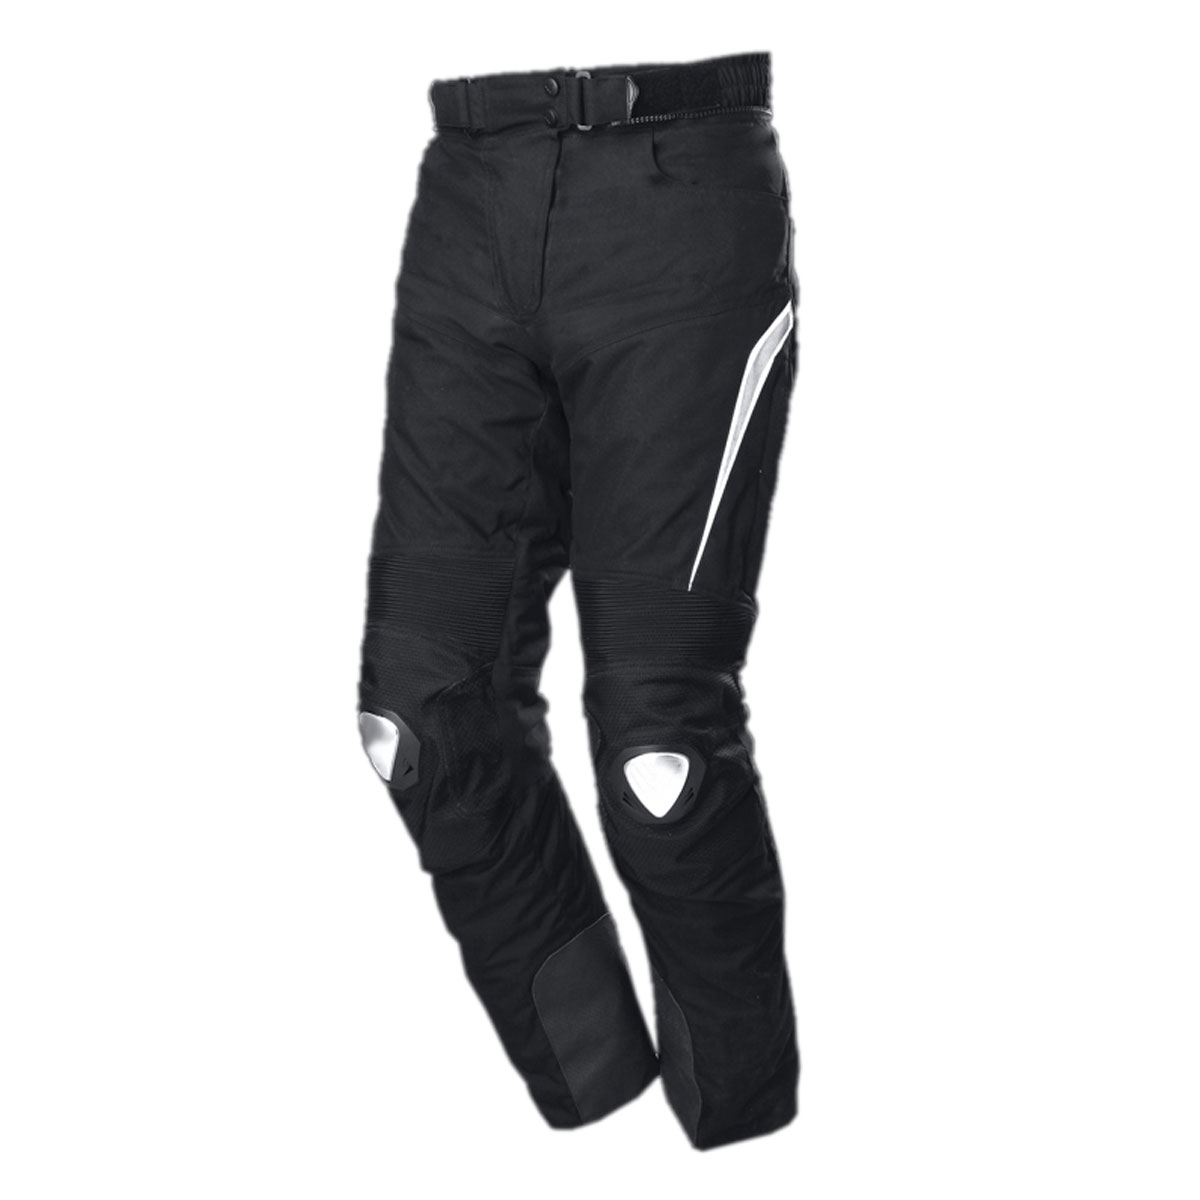 BLACK MALE CORDURA PANT WITH WHITE KNEE SUPPORT